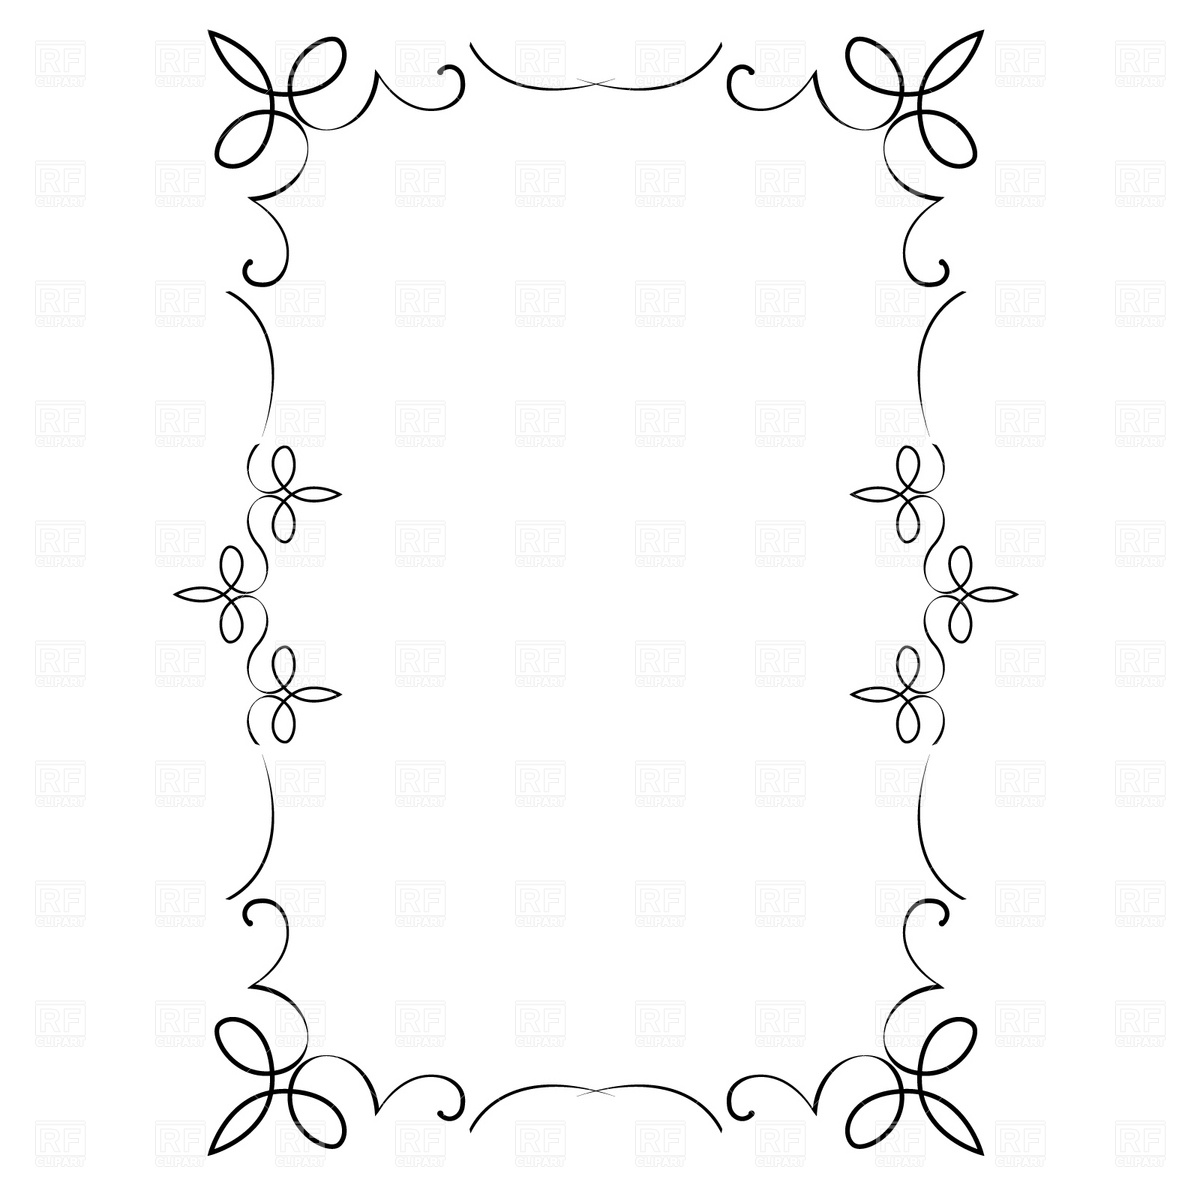 hight resolution of free vector decorative frame borders